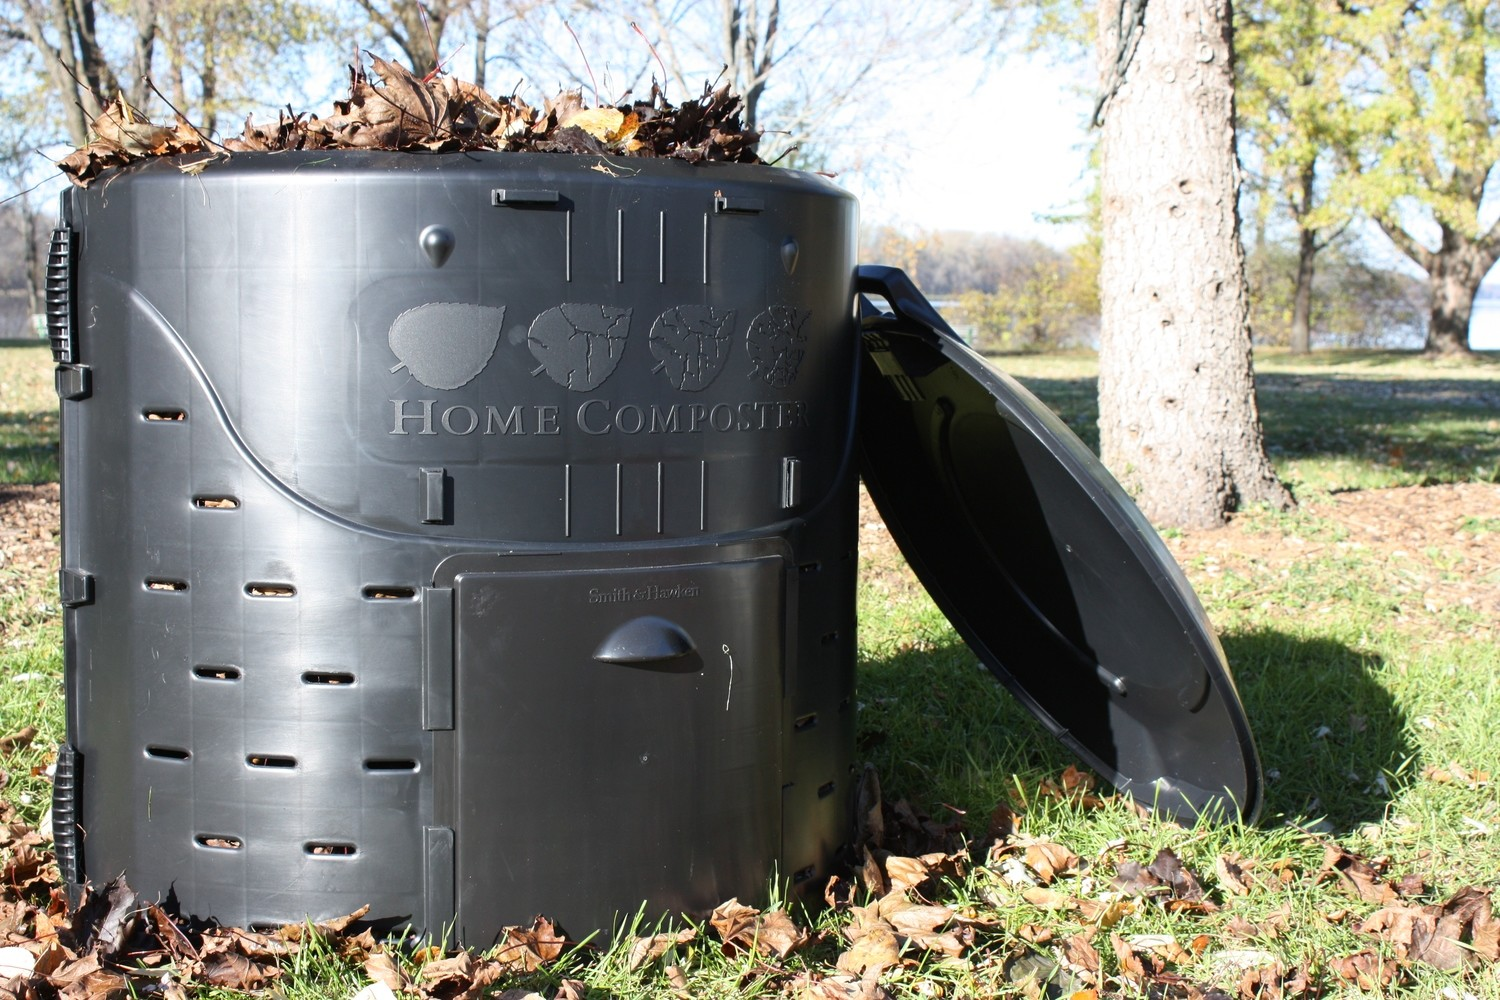 Cities of Brooklyn Center, Brooklyn Park, Crystal, New Hope Home Composter